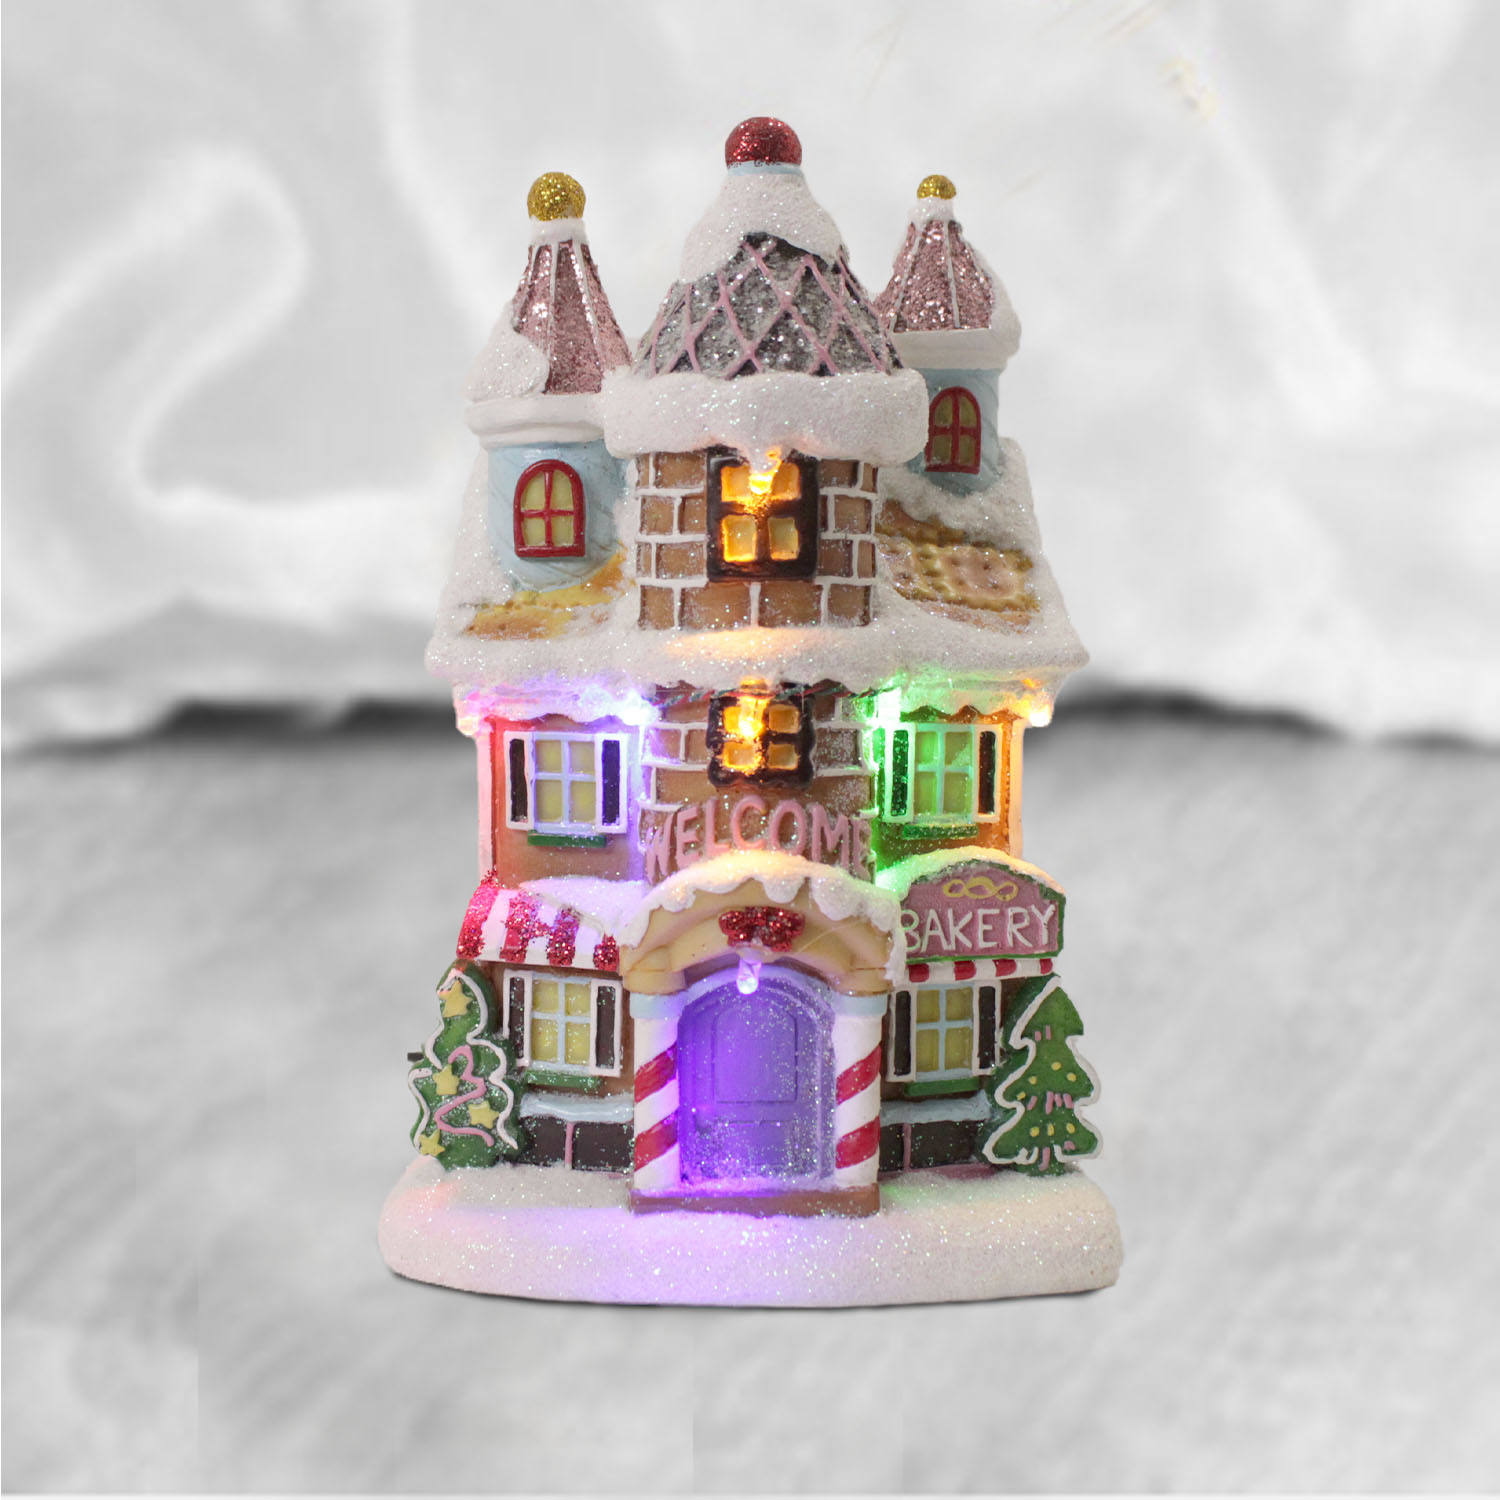 Tabletop Indoor Decoration House Ornaments Led Resin Christmas Village